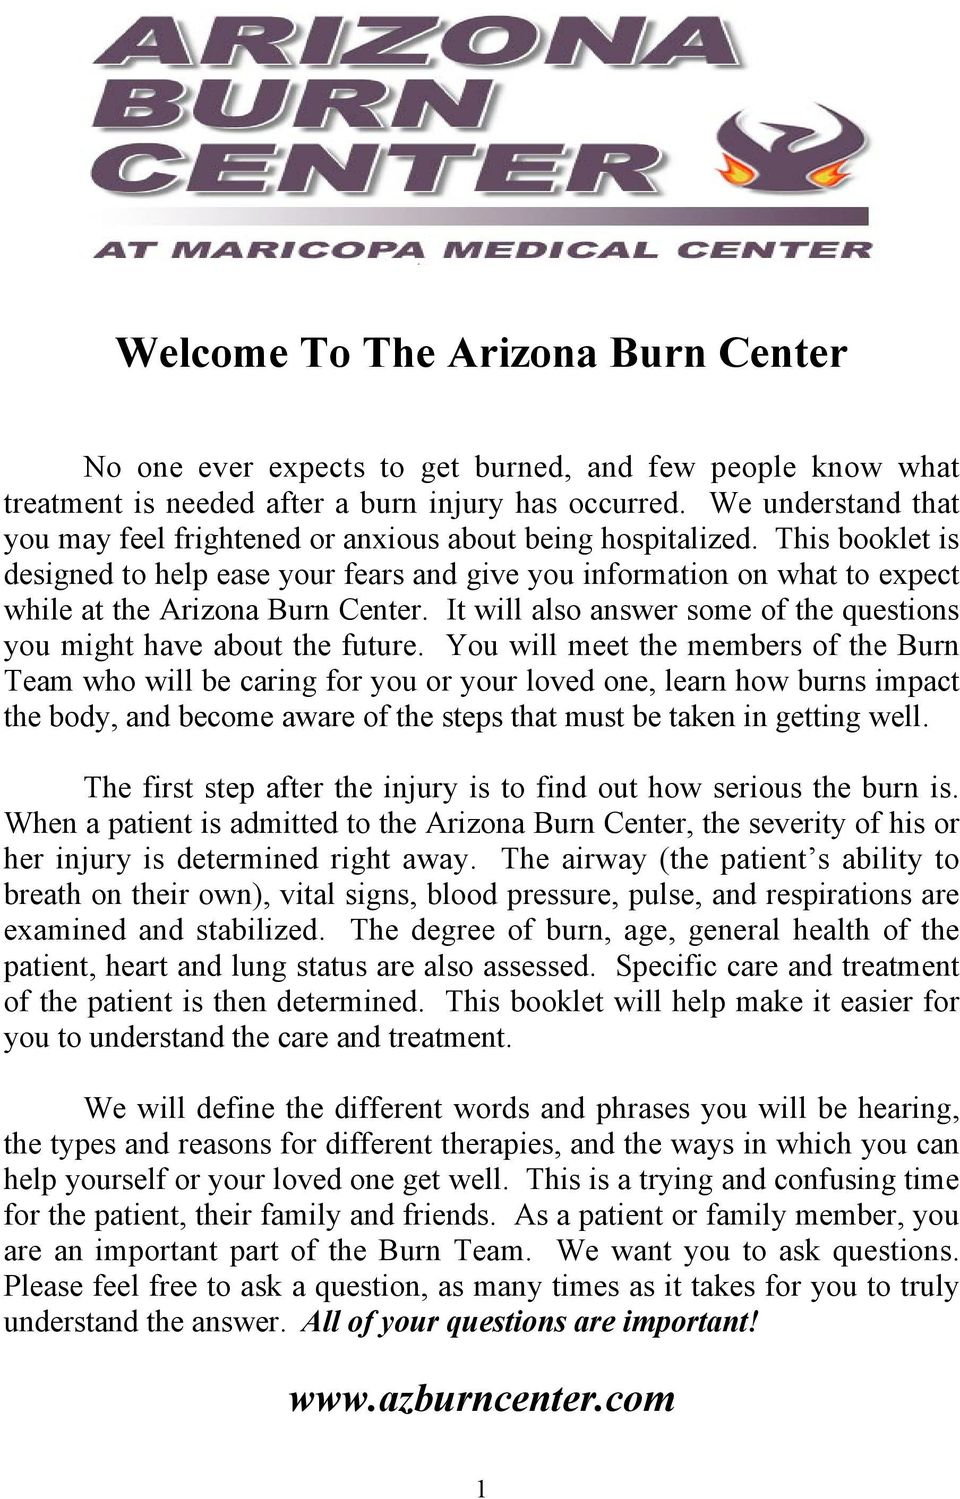 This booklet is designed to help ease your fears and give you information on what to expect while at the Arizona Burn Center. It will also answer some of the questions you might have about the future.